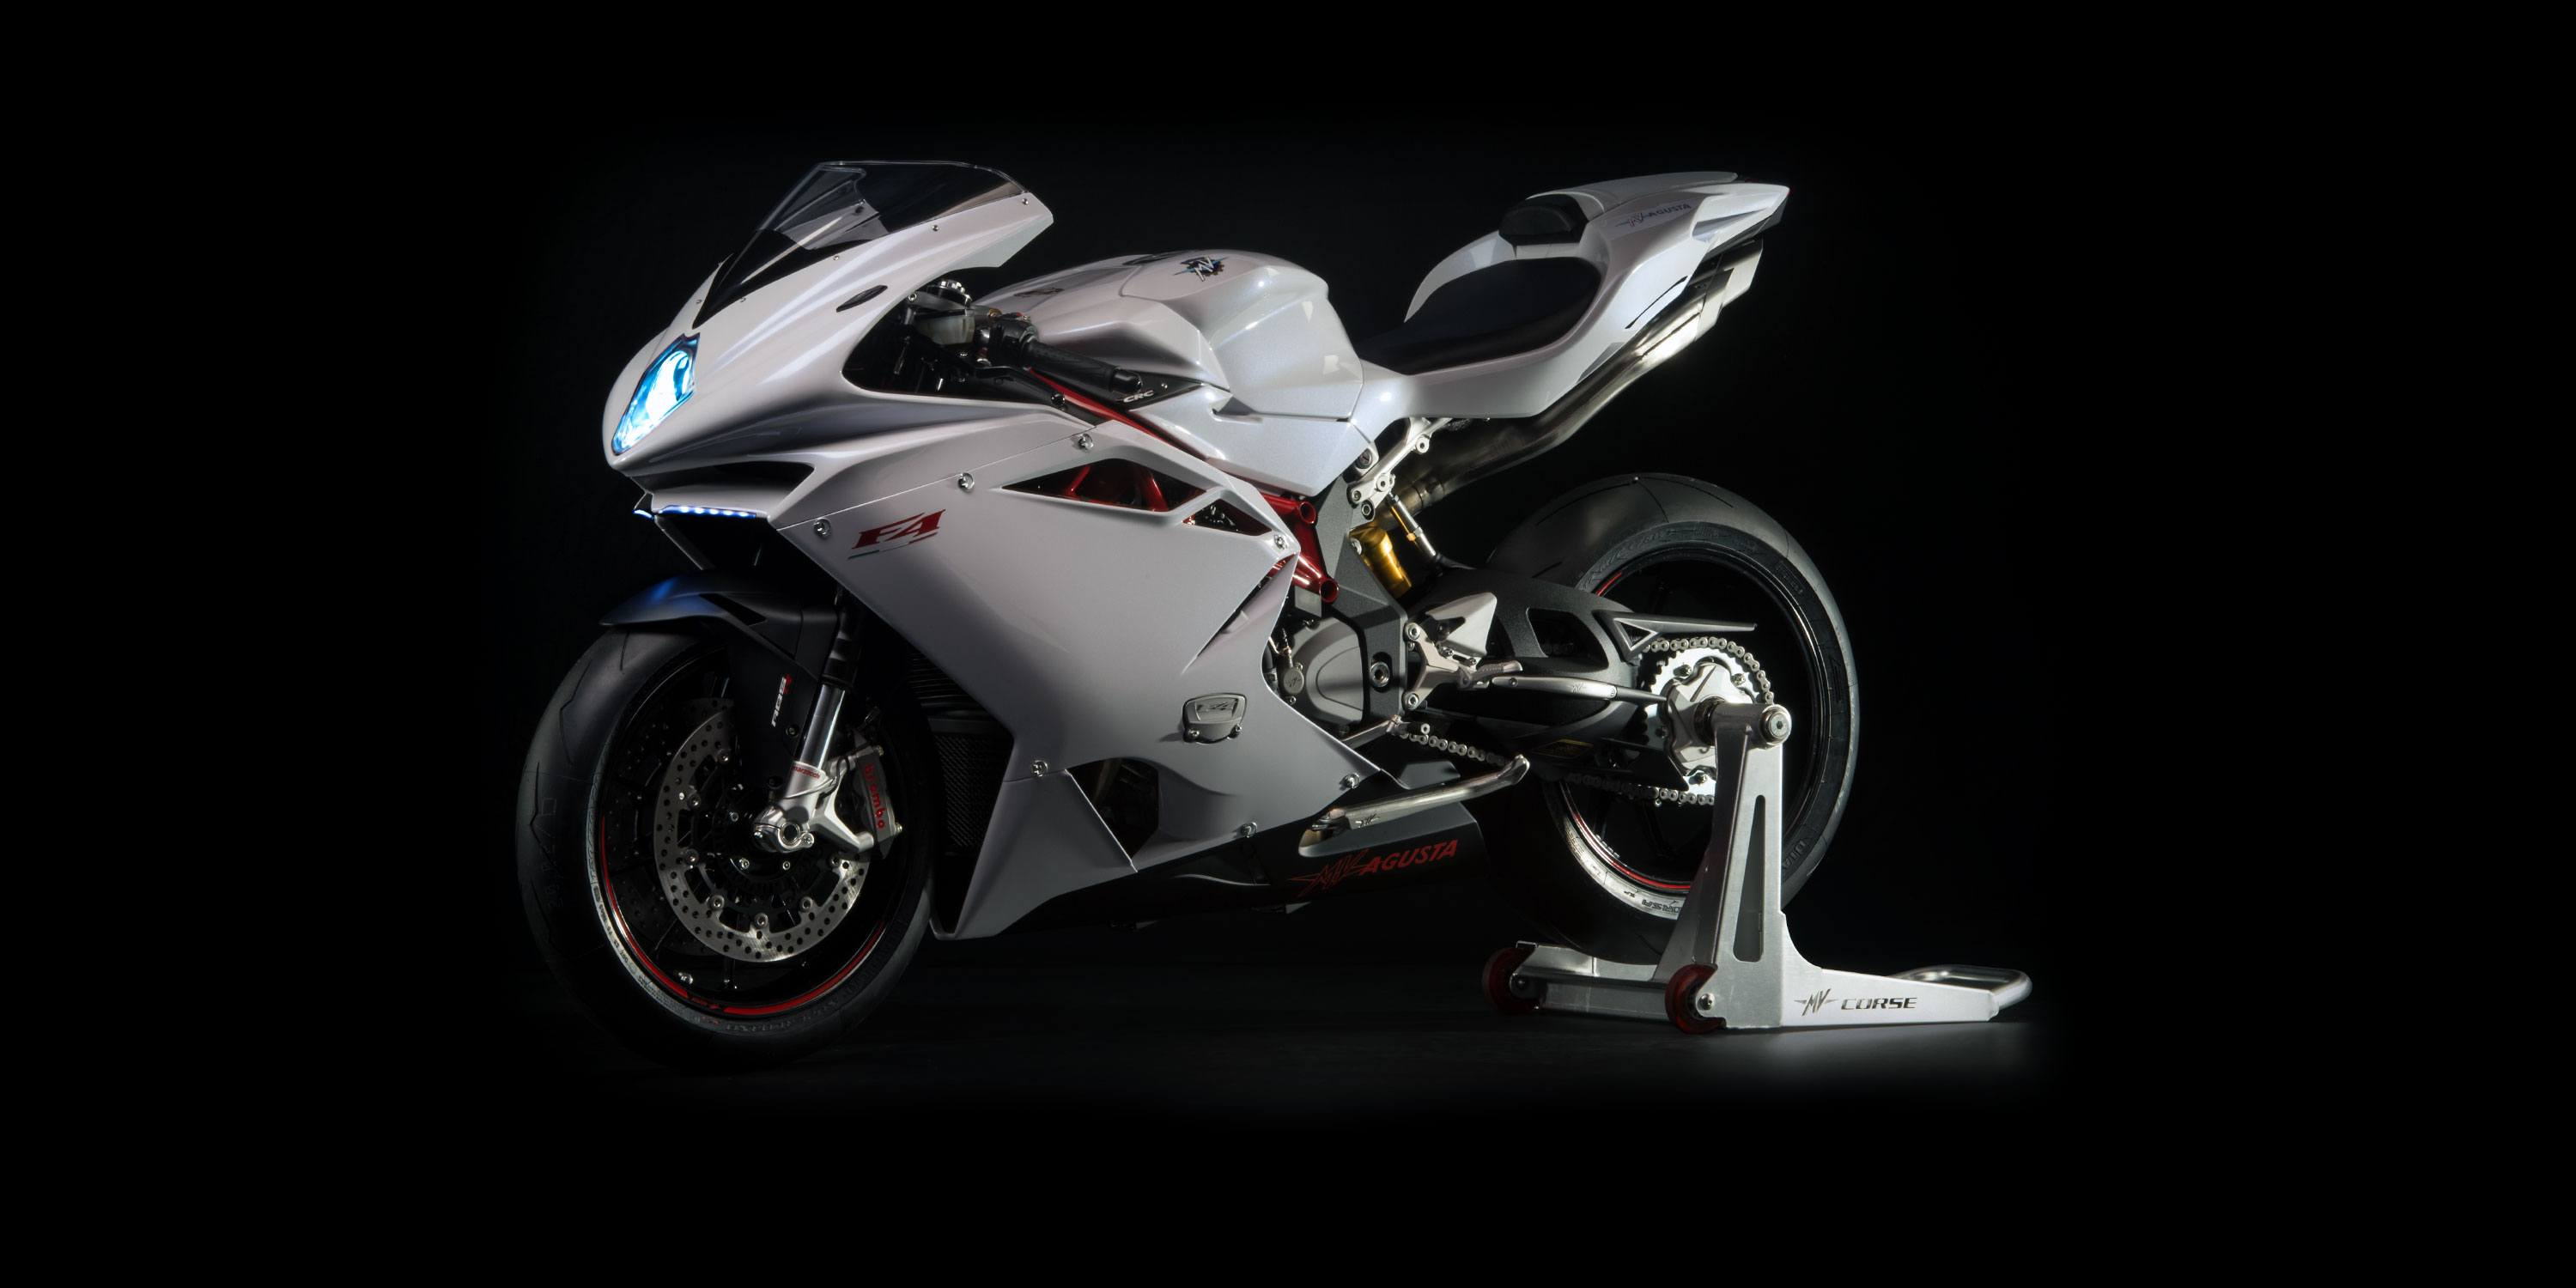 New 2017 Mv Agusta F4 Motorcycles In Greenwood Village Co